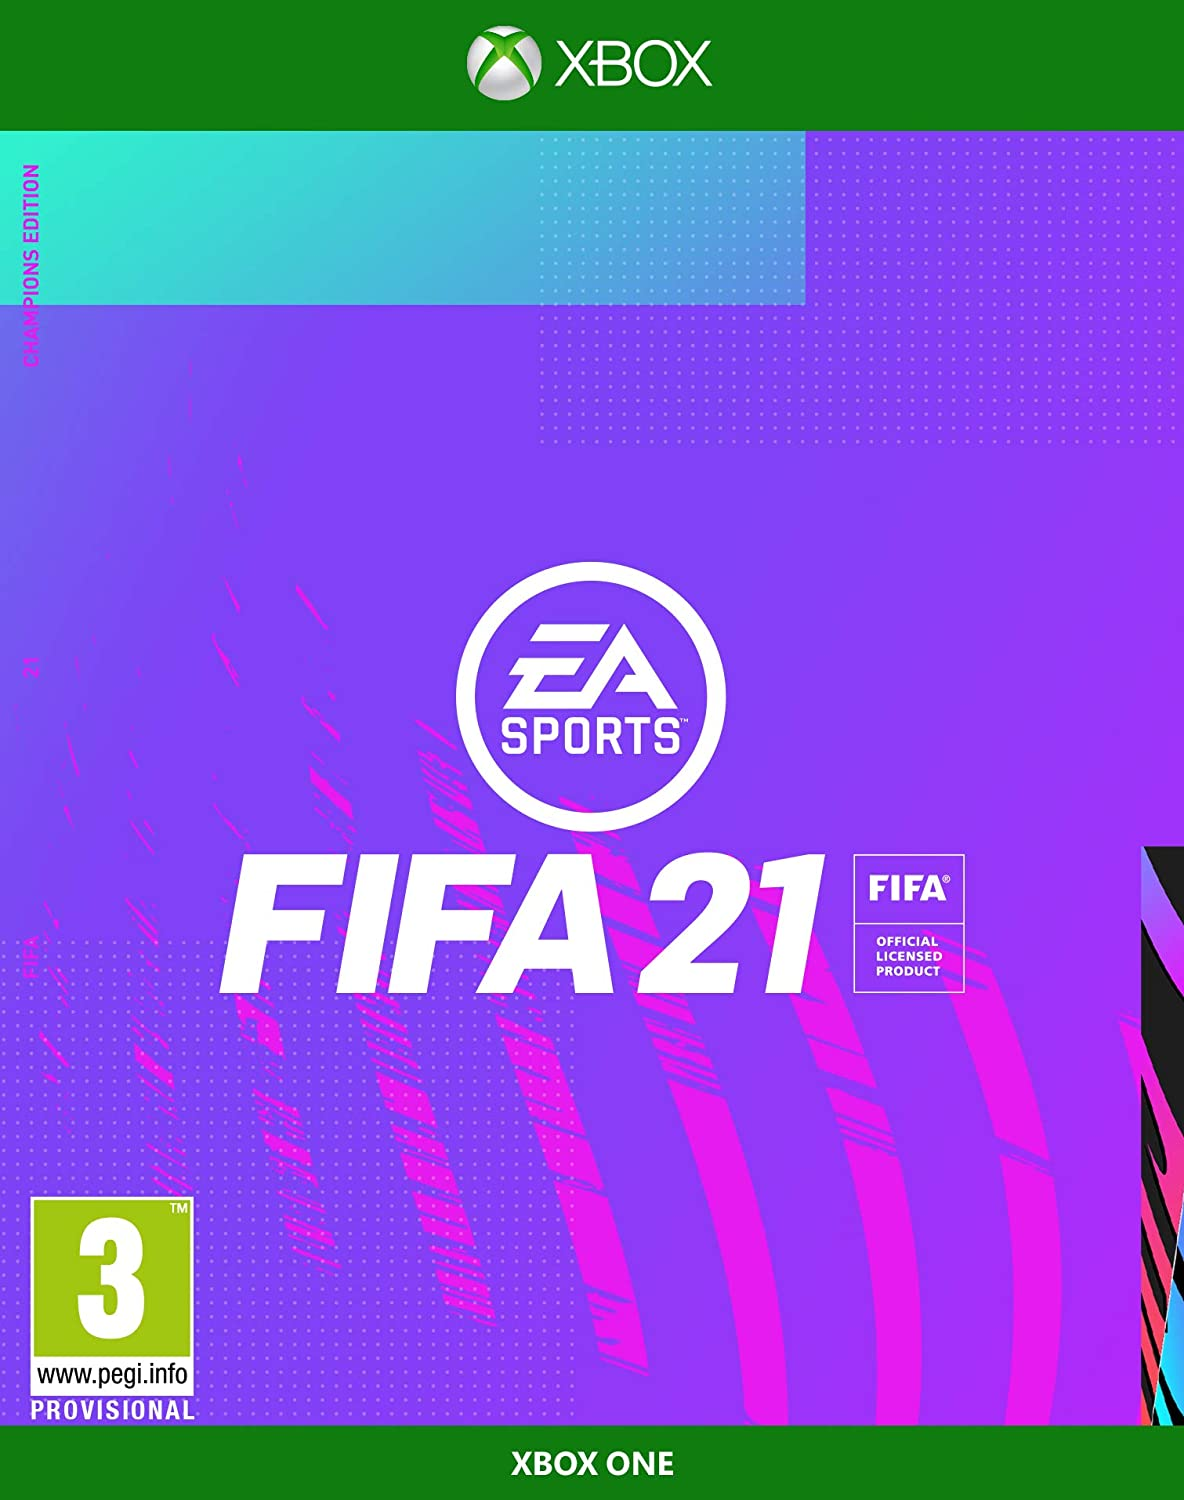 FIFA 21 (Dual Entitlement)